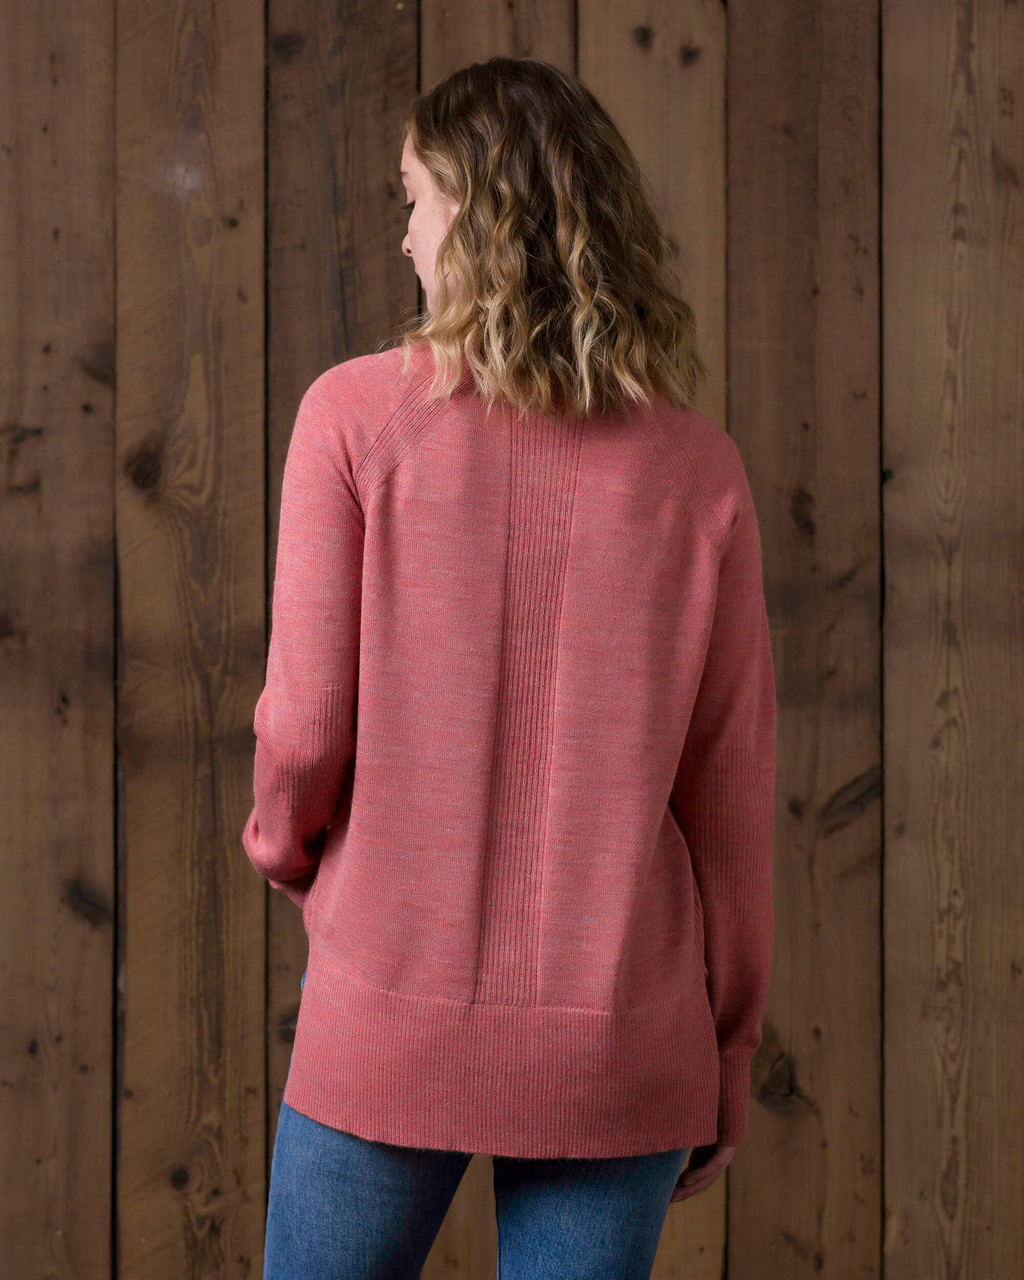 alicia adams alpaca brooke sweater, womens alpaca sweater, 100 alpaca sweater for women, lightweight alpaca sweater, cayenne pink womens alpaca sweater